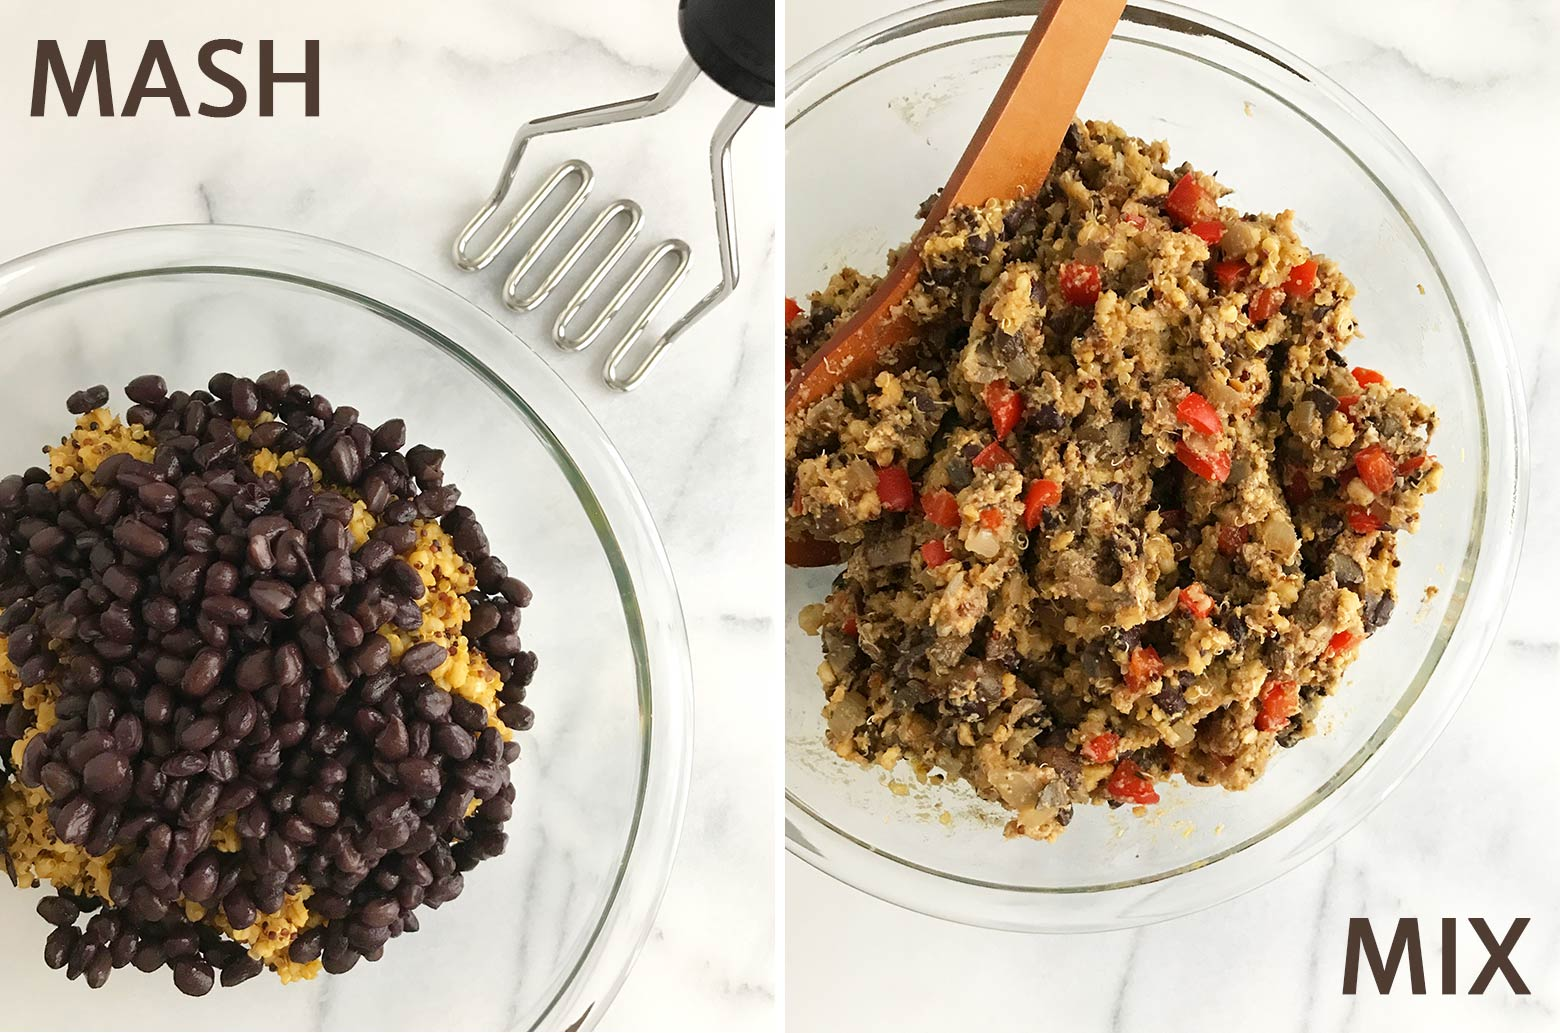 Left photo: black beans and grain mixture together in a glass bowl with a potato masher. Right photo: All of the loaf ingredients are combined in a bowl.